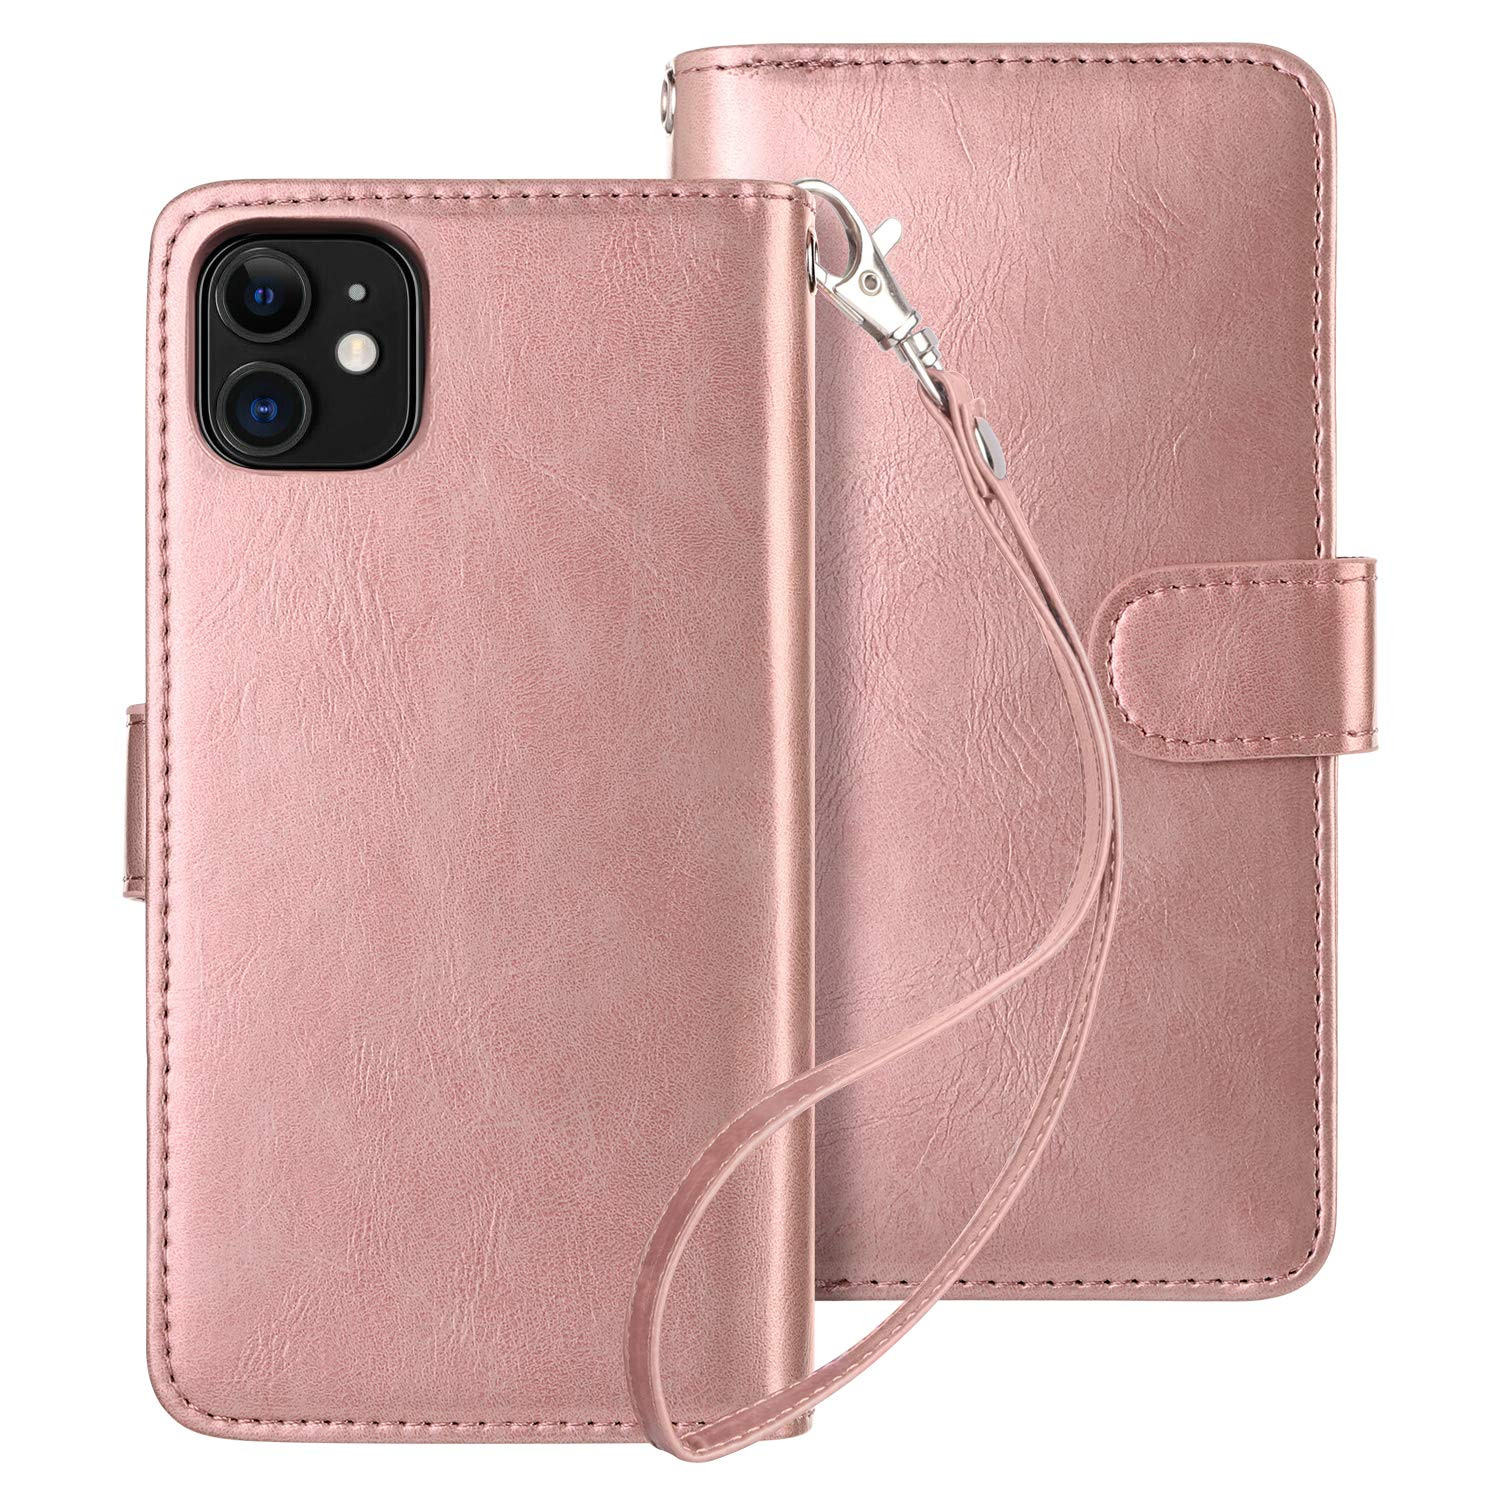 HianDier Case for iPhone 11 Wallet Cases with Card Holder 9 Slots Detachable PU Leather Flip Cover Shockproof Magnetic Clasp Lanyard Dual Layer Wallet Case for 2019 iPhone 11 6.1 Inches, Rose Gold